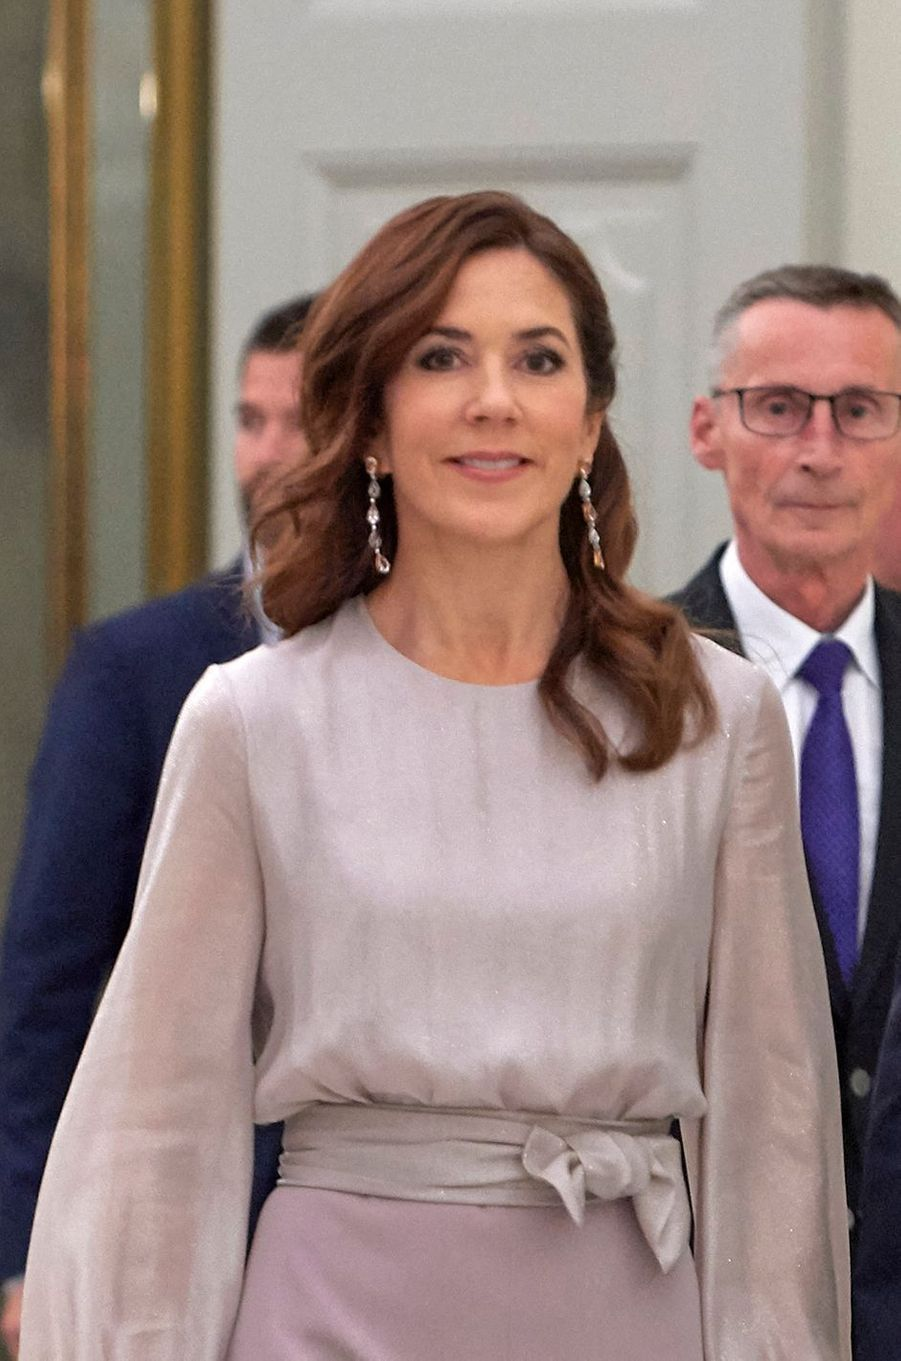 La princesse Mary de Danemark à Copenhague, le 11 octobre 2019